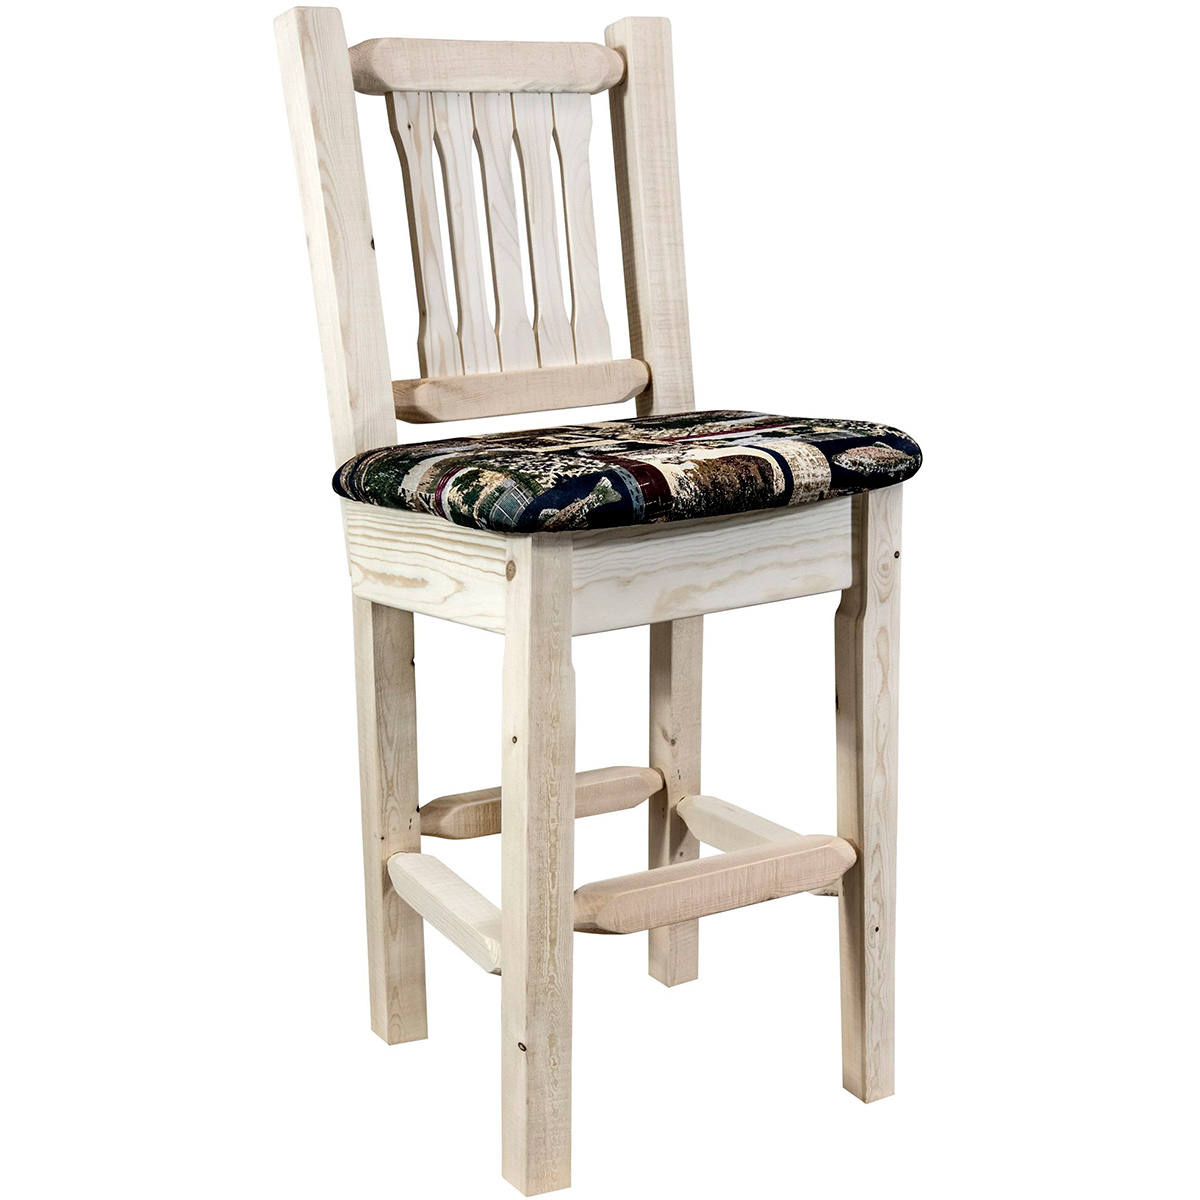 Ranchman's Barstool with Back, Woodland Upholstered Seat & Clear Lacquer Finish